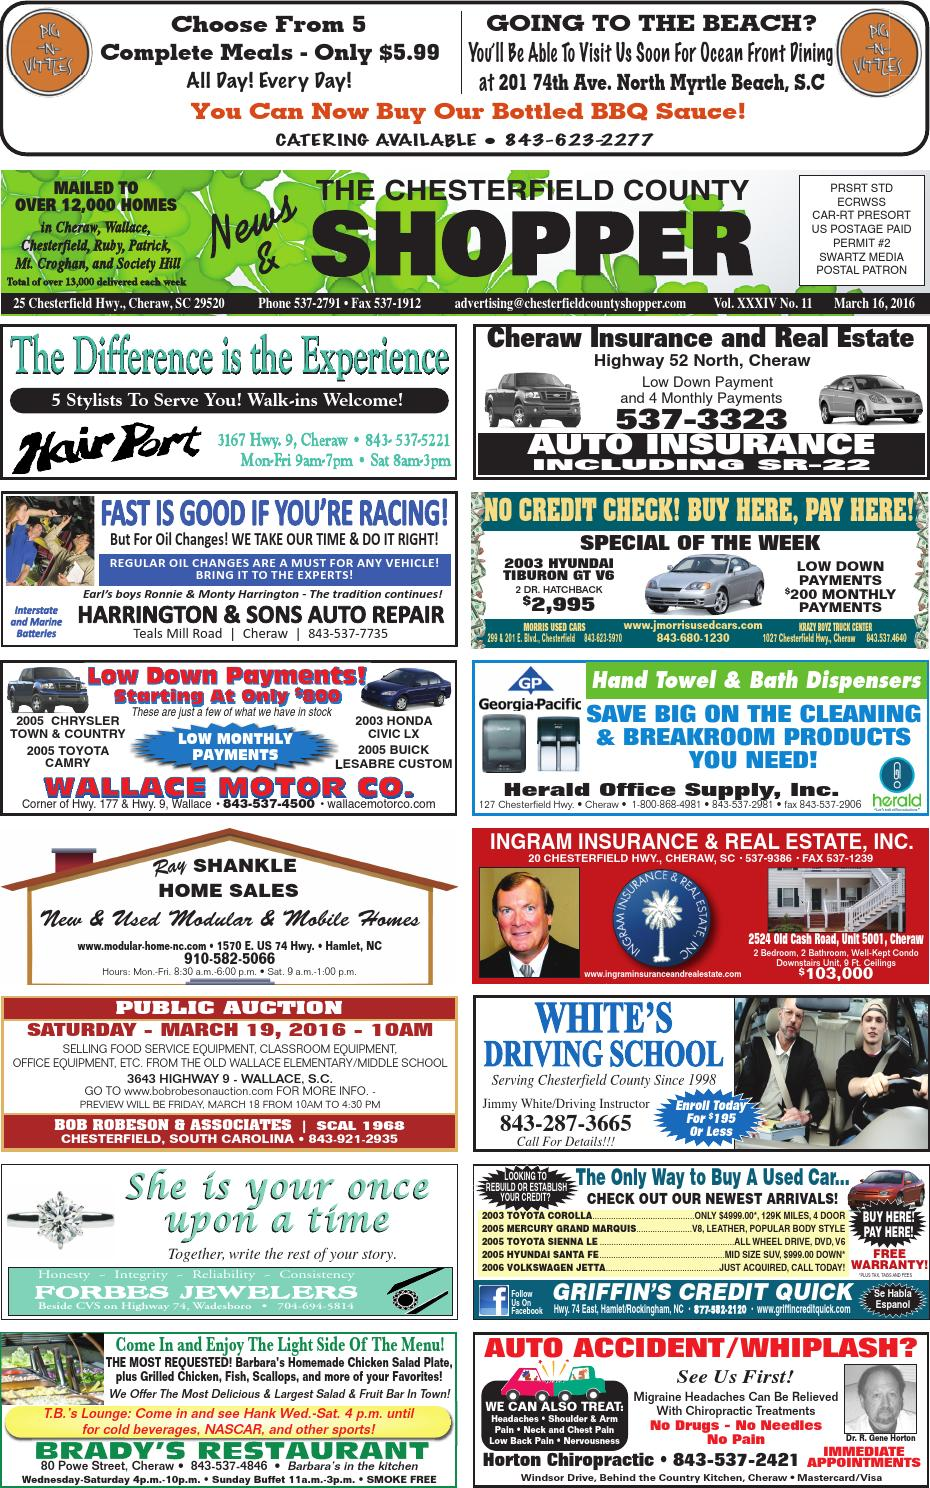 Chesterfield County News Shopper 3 16 16 By The News Journal Issuu